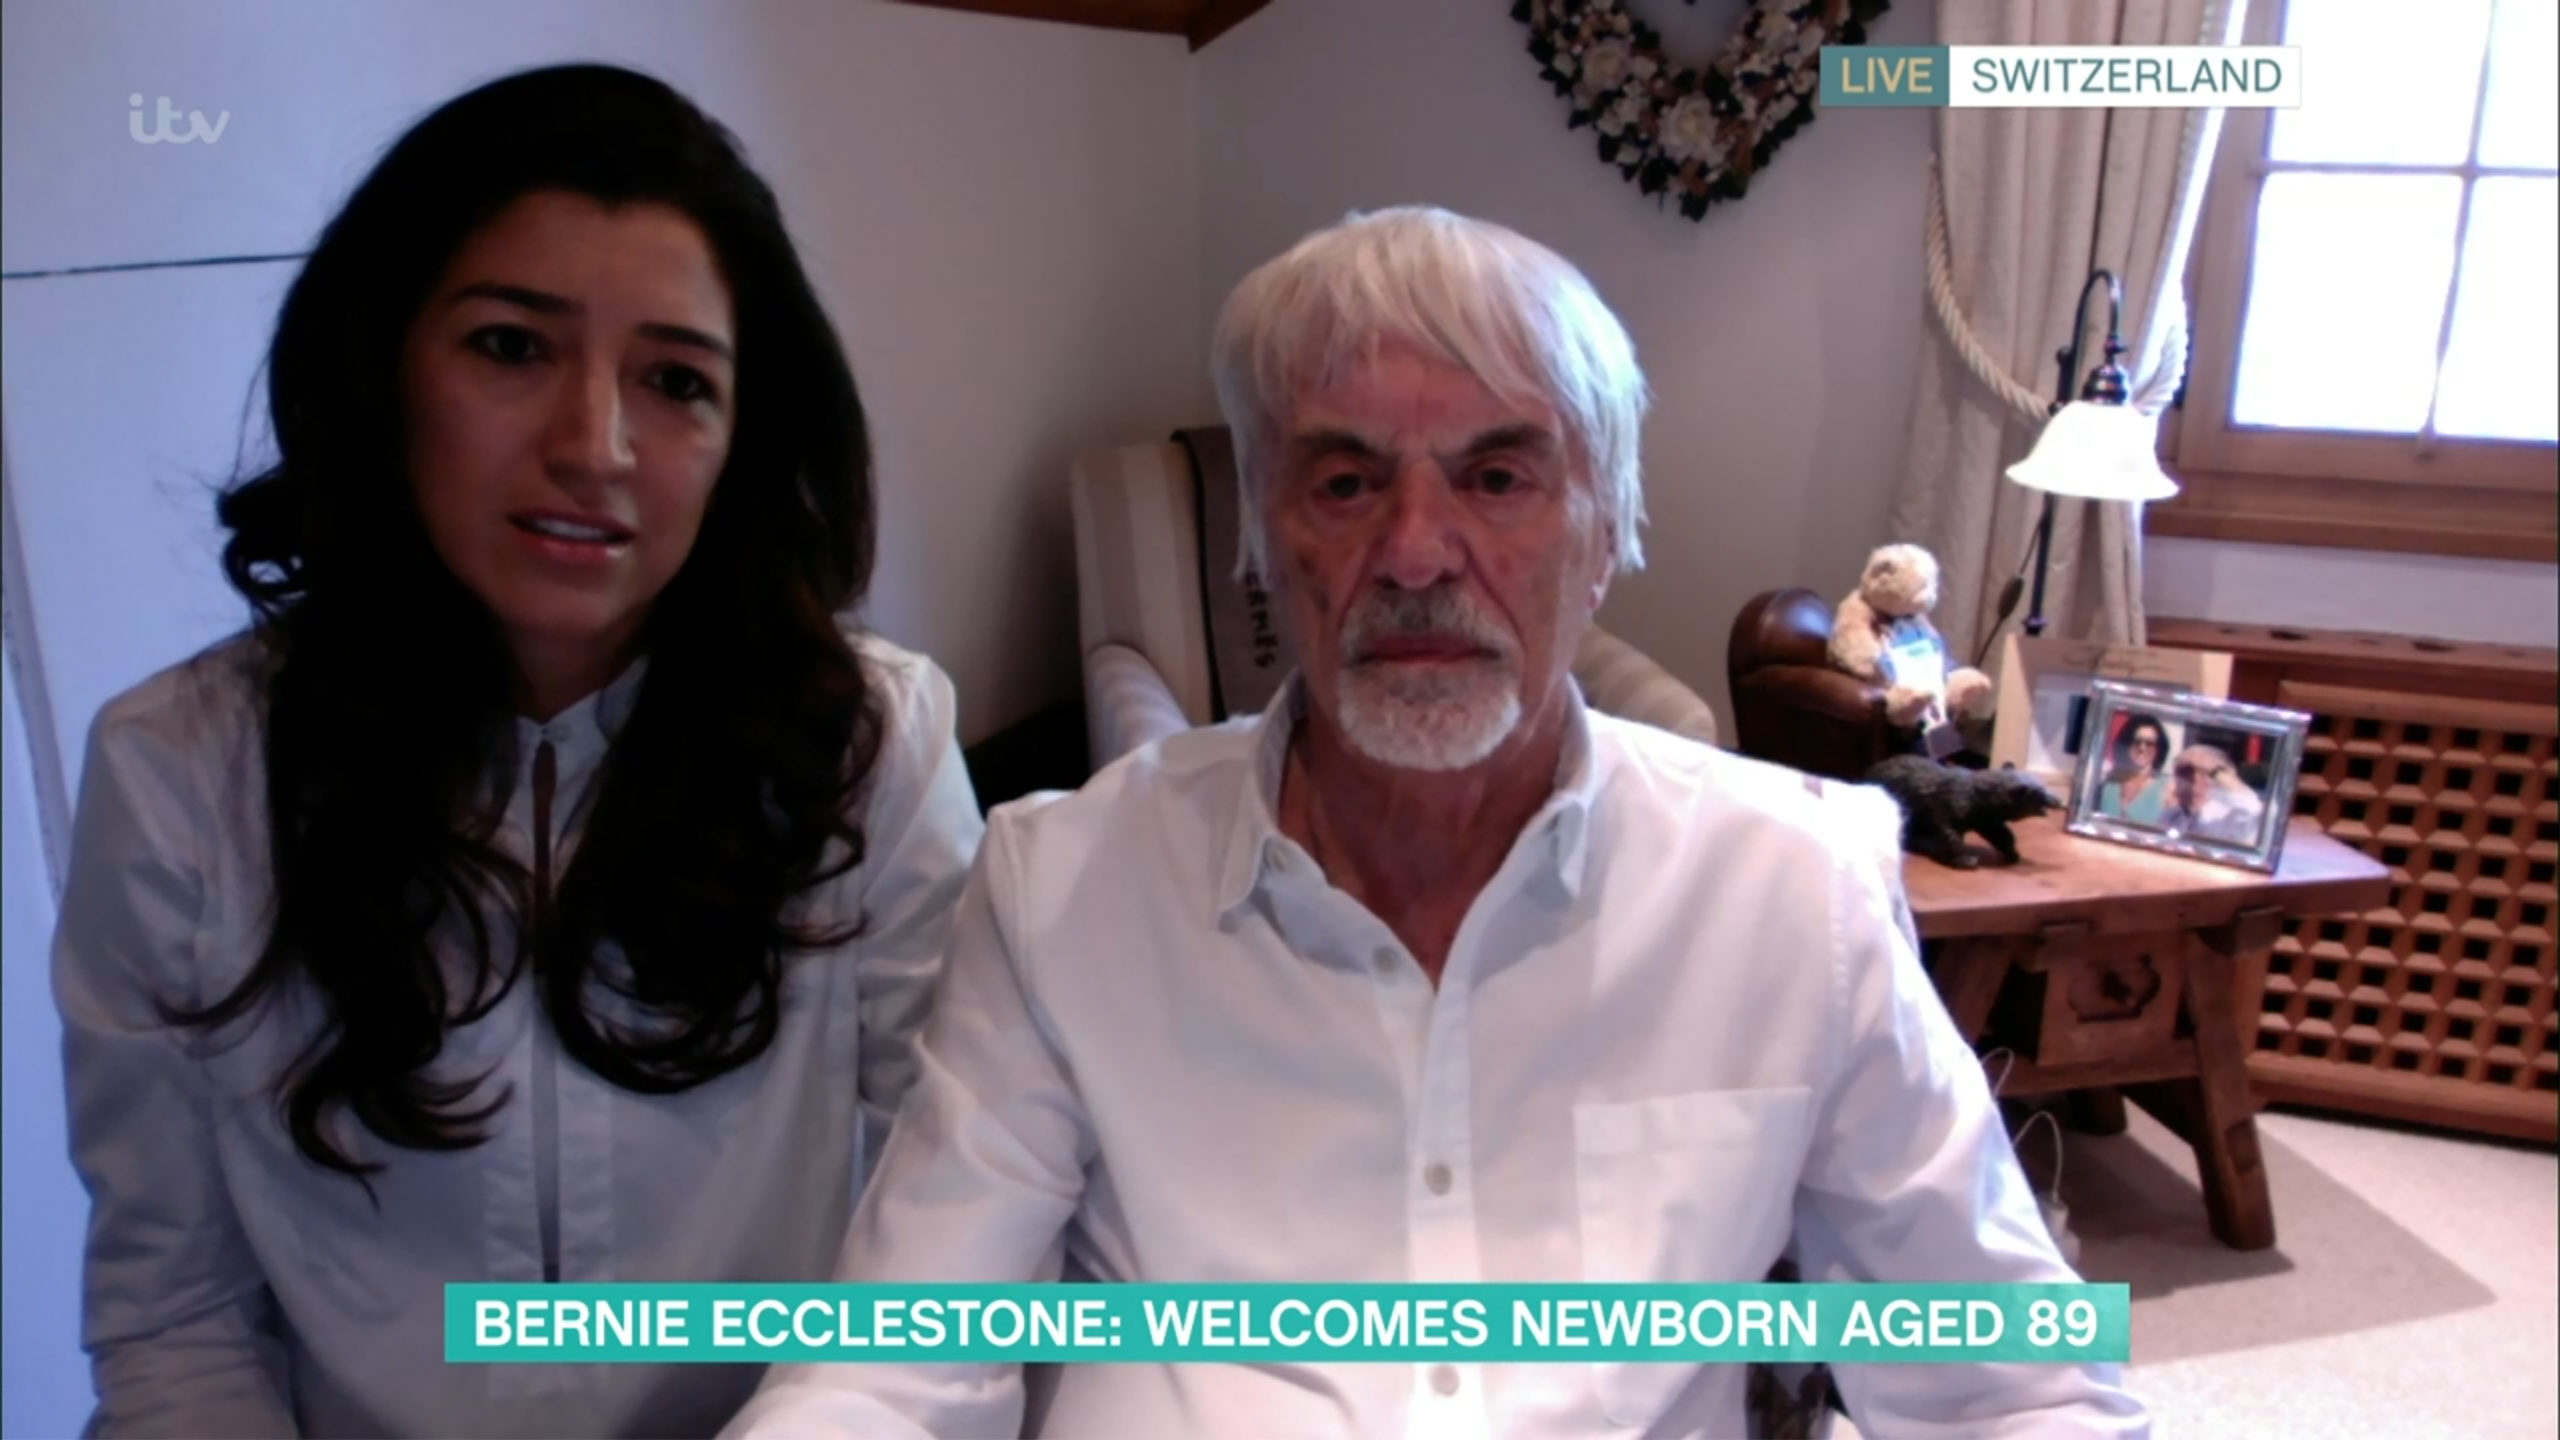 This Morning: Bernie Ecclestone causes outrage as he says he doesn't change nappies